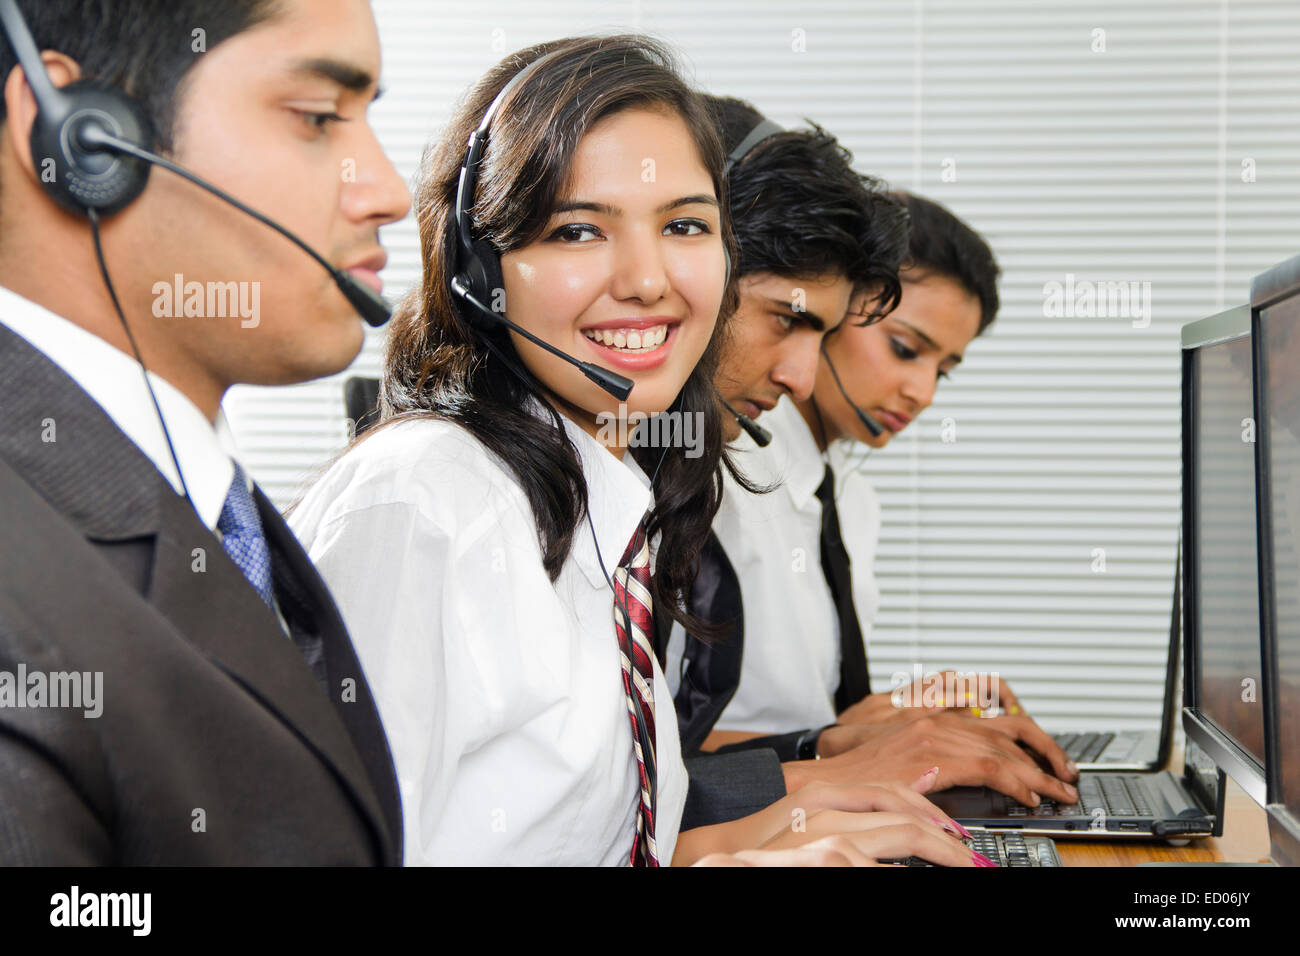 indian Telecaller Office working - Stock Image